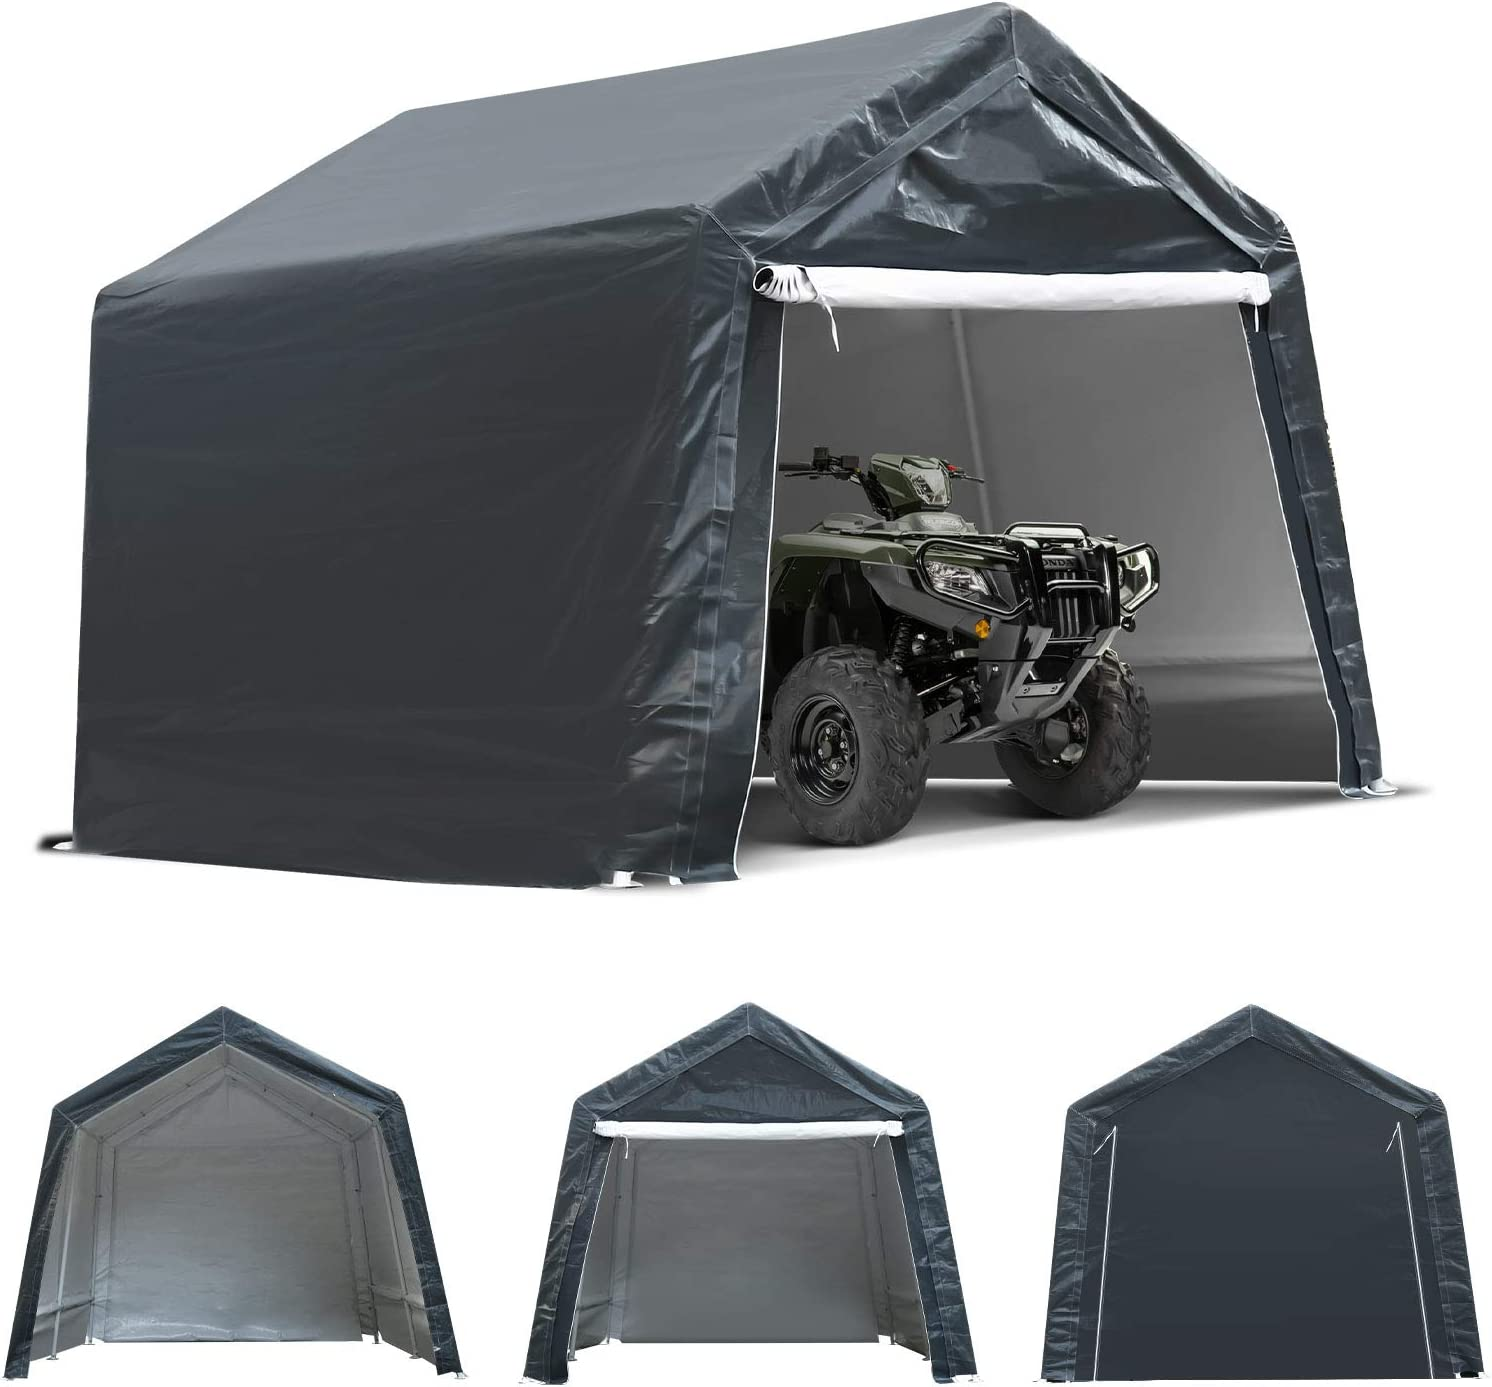 TOOCA 7x12x7.4 Ft Portable Garage Tent Kit Outdoor Carport Canopy Storage Shelter Shed with Detachable Roll-up Zipper Door for Motorcycle Gardening Vehicle ATV Storage, Ultimate Gray